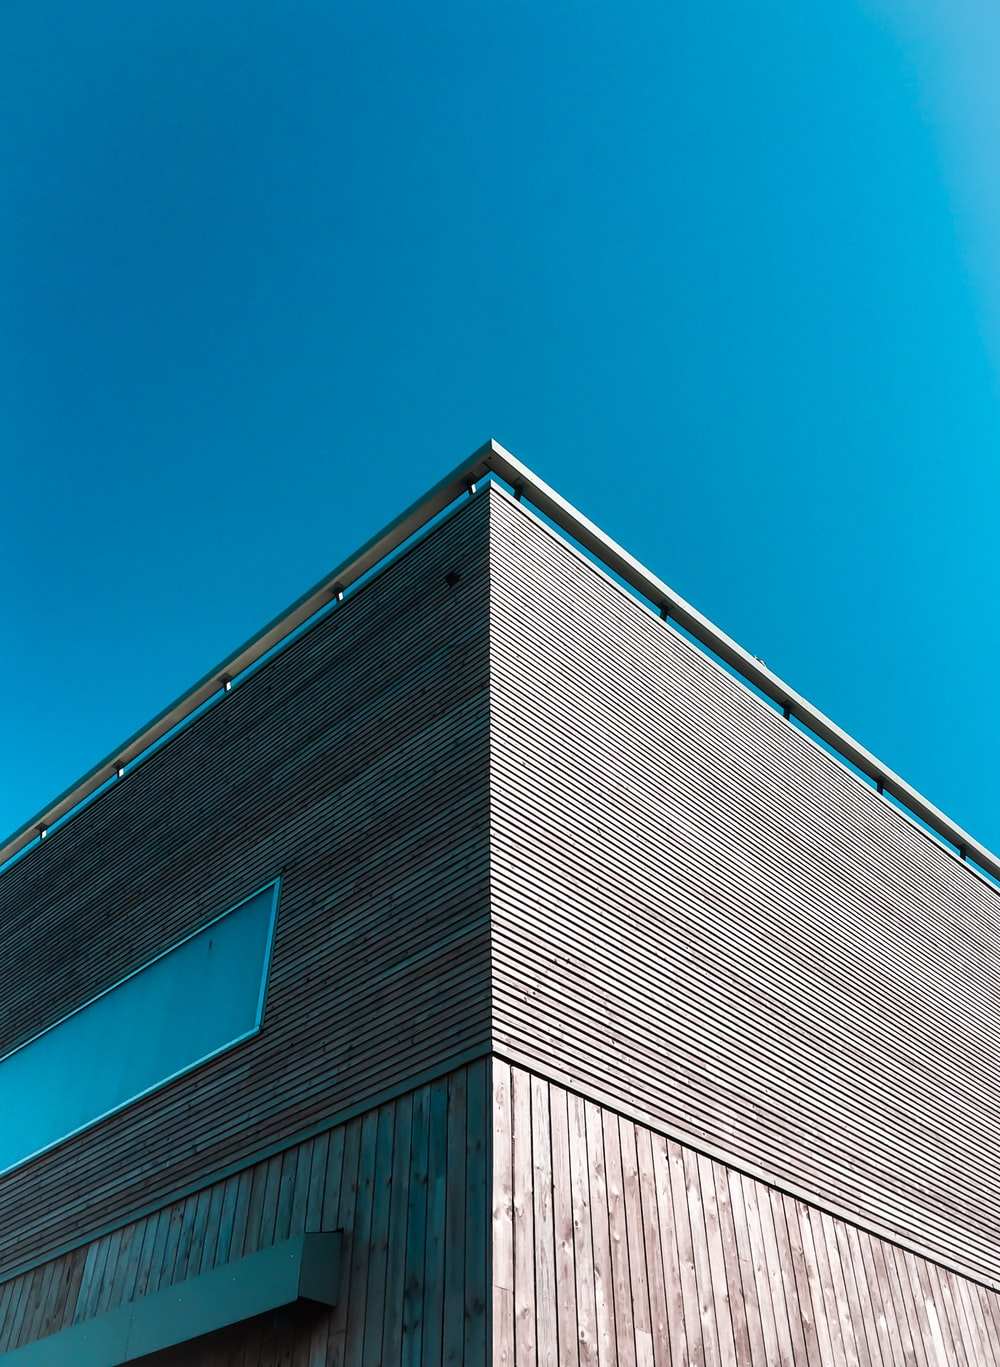 brown plank building